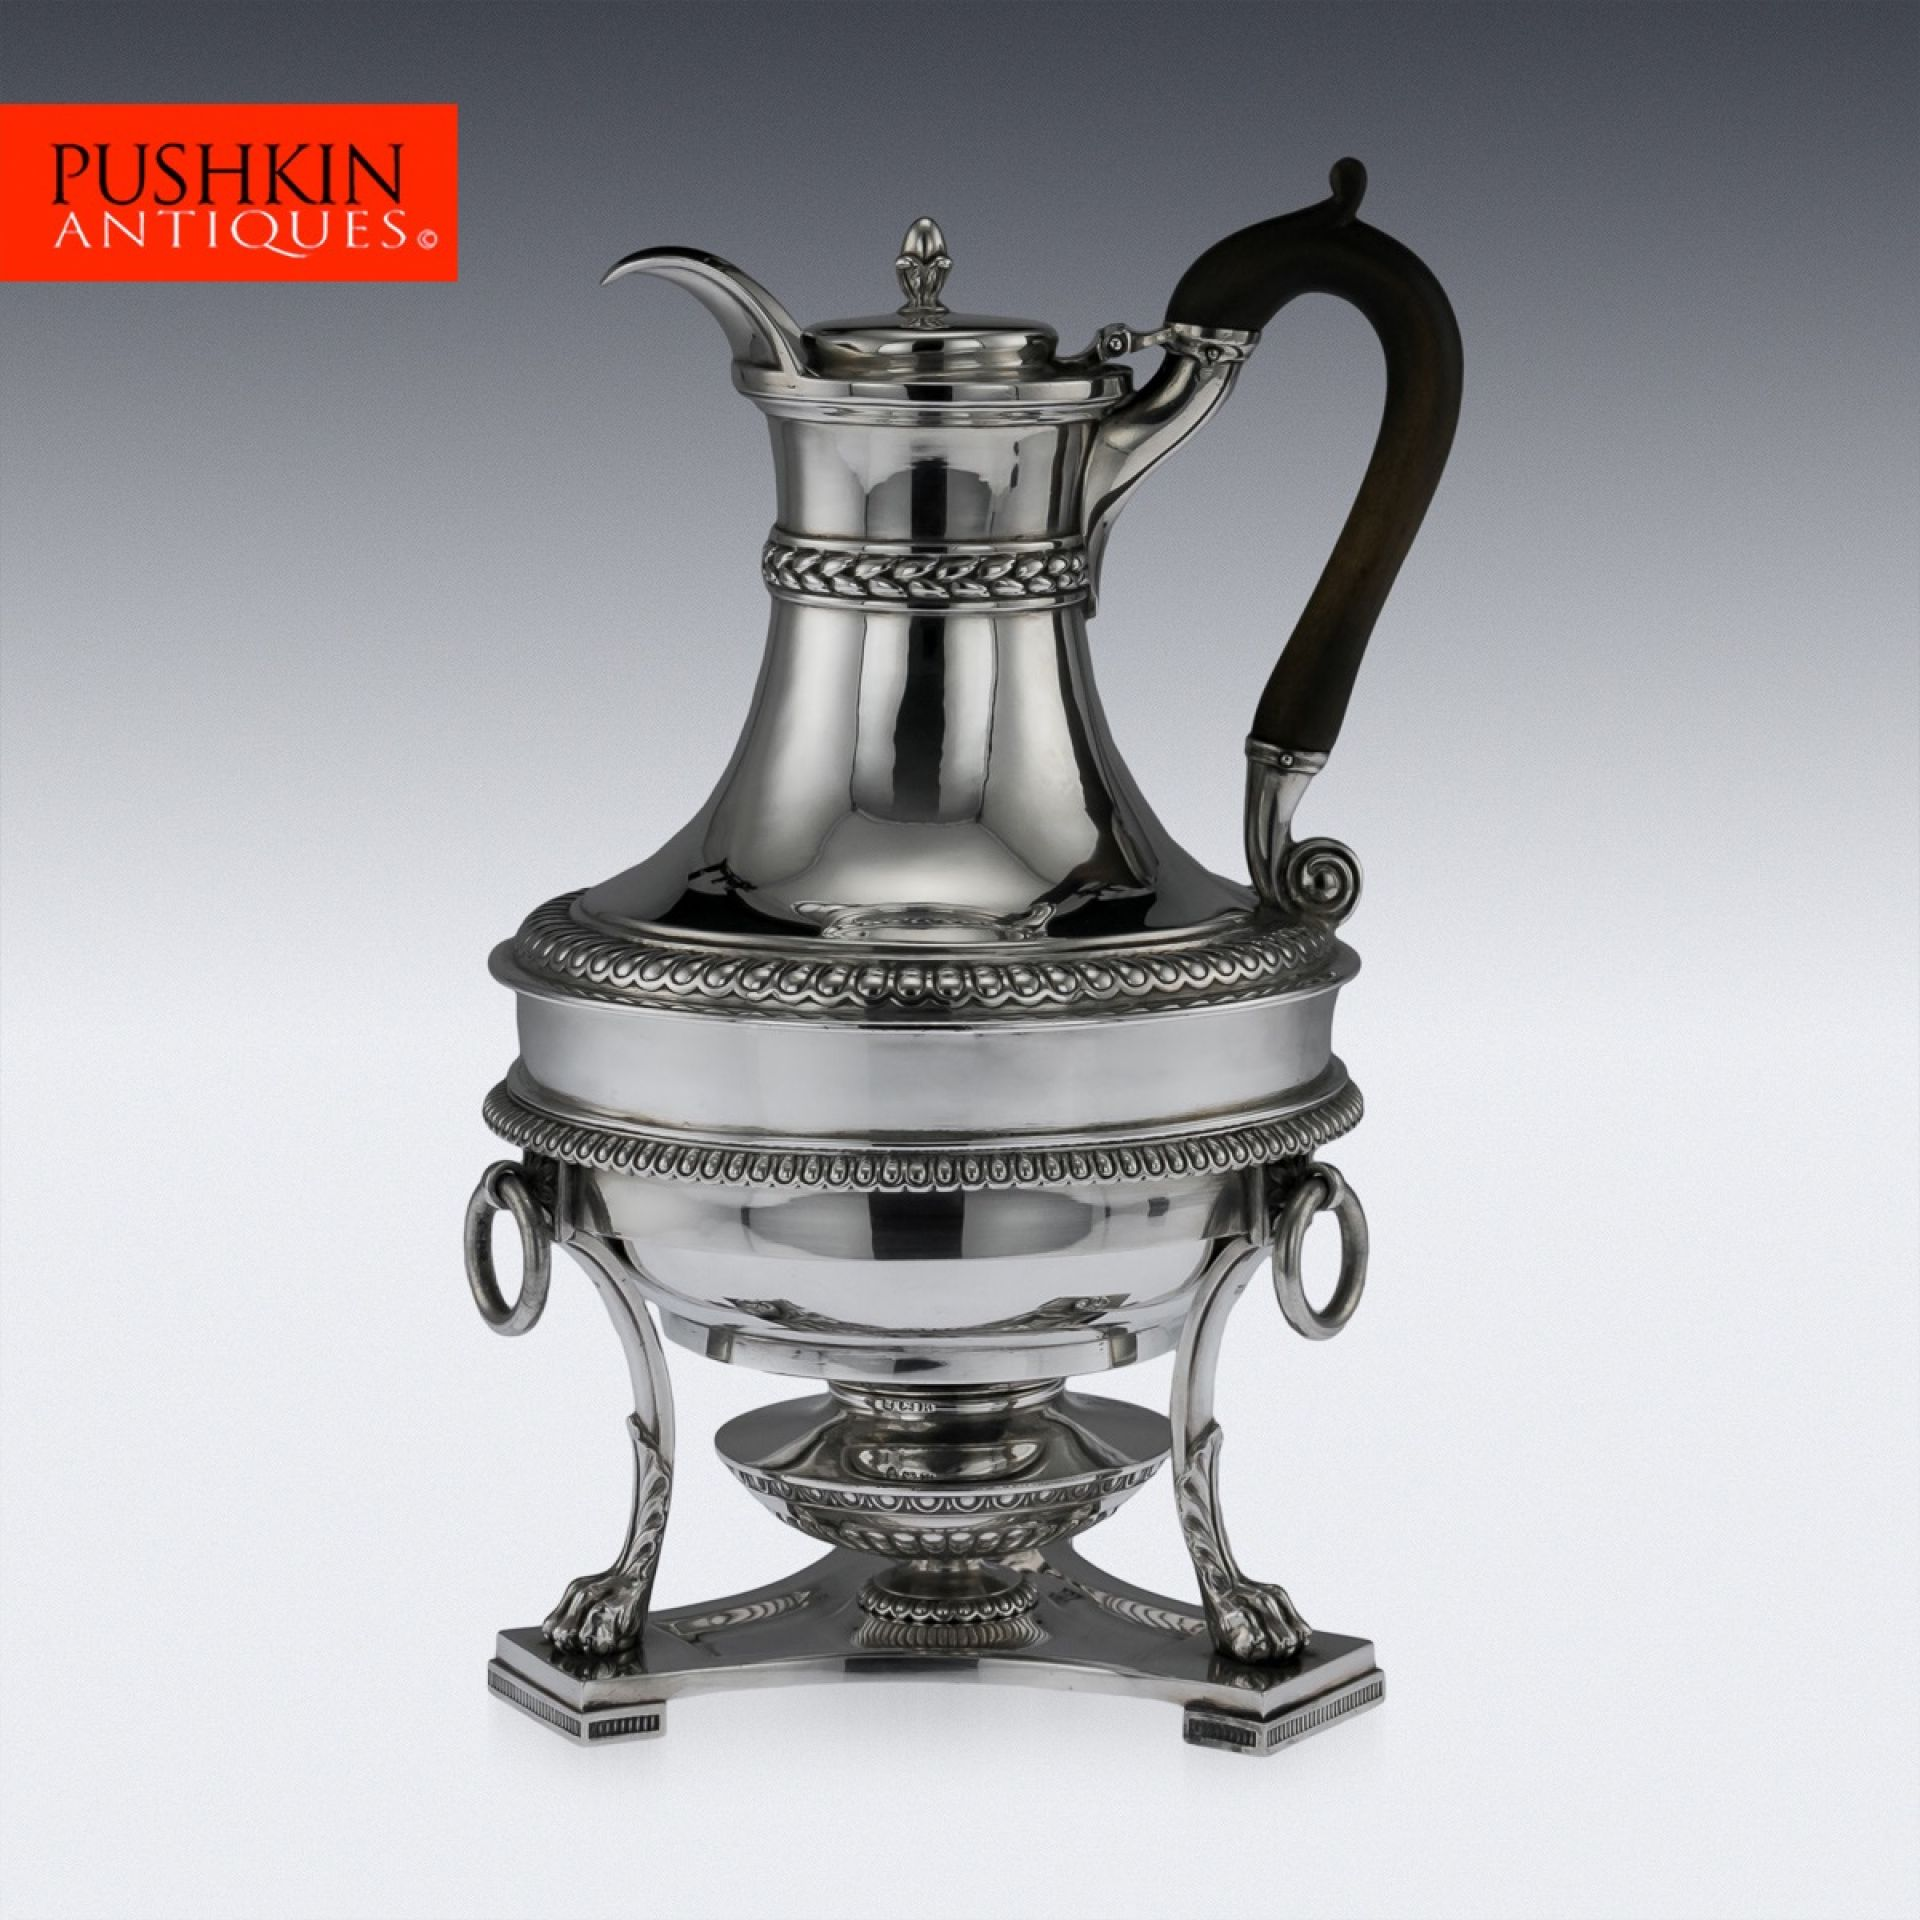 ANTIQUE 19THC RARE GEORGIAN SOLID SILVER JUG ON STAND, PAUL STORR C.1806